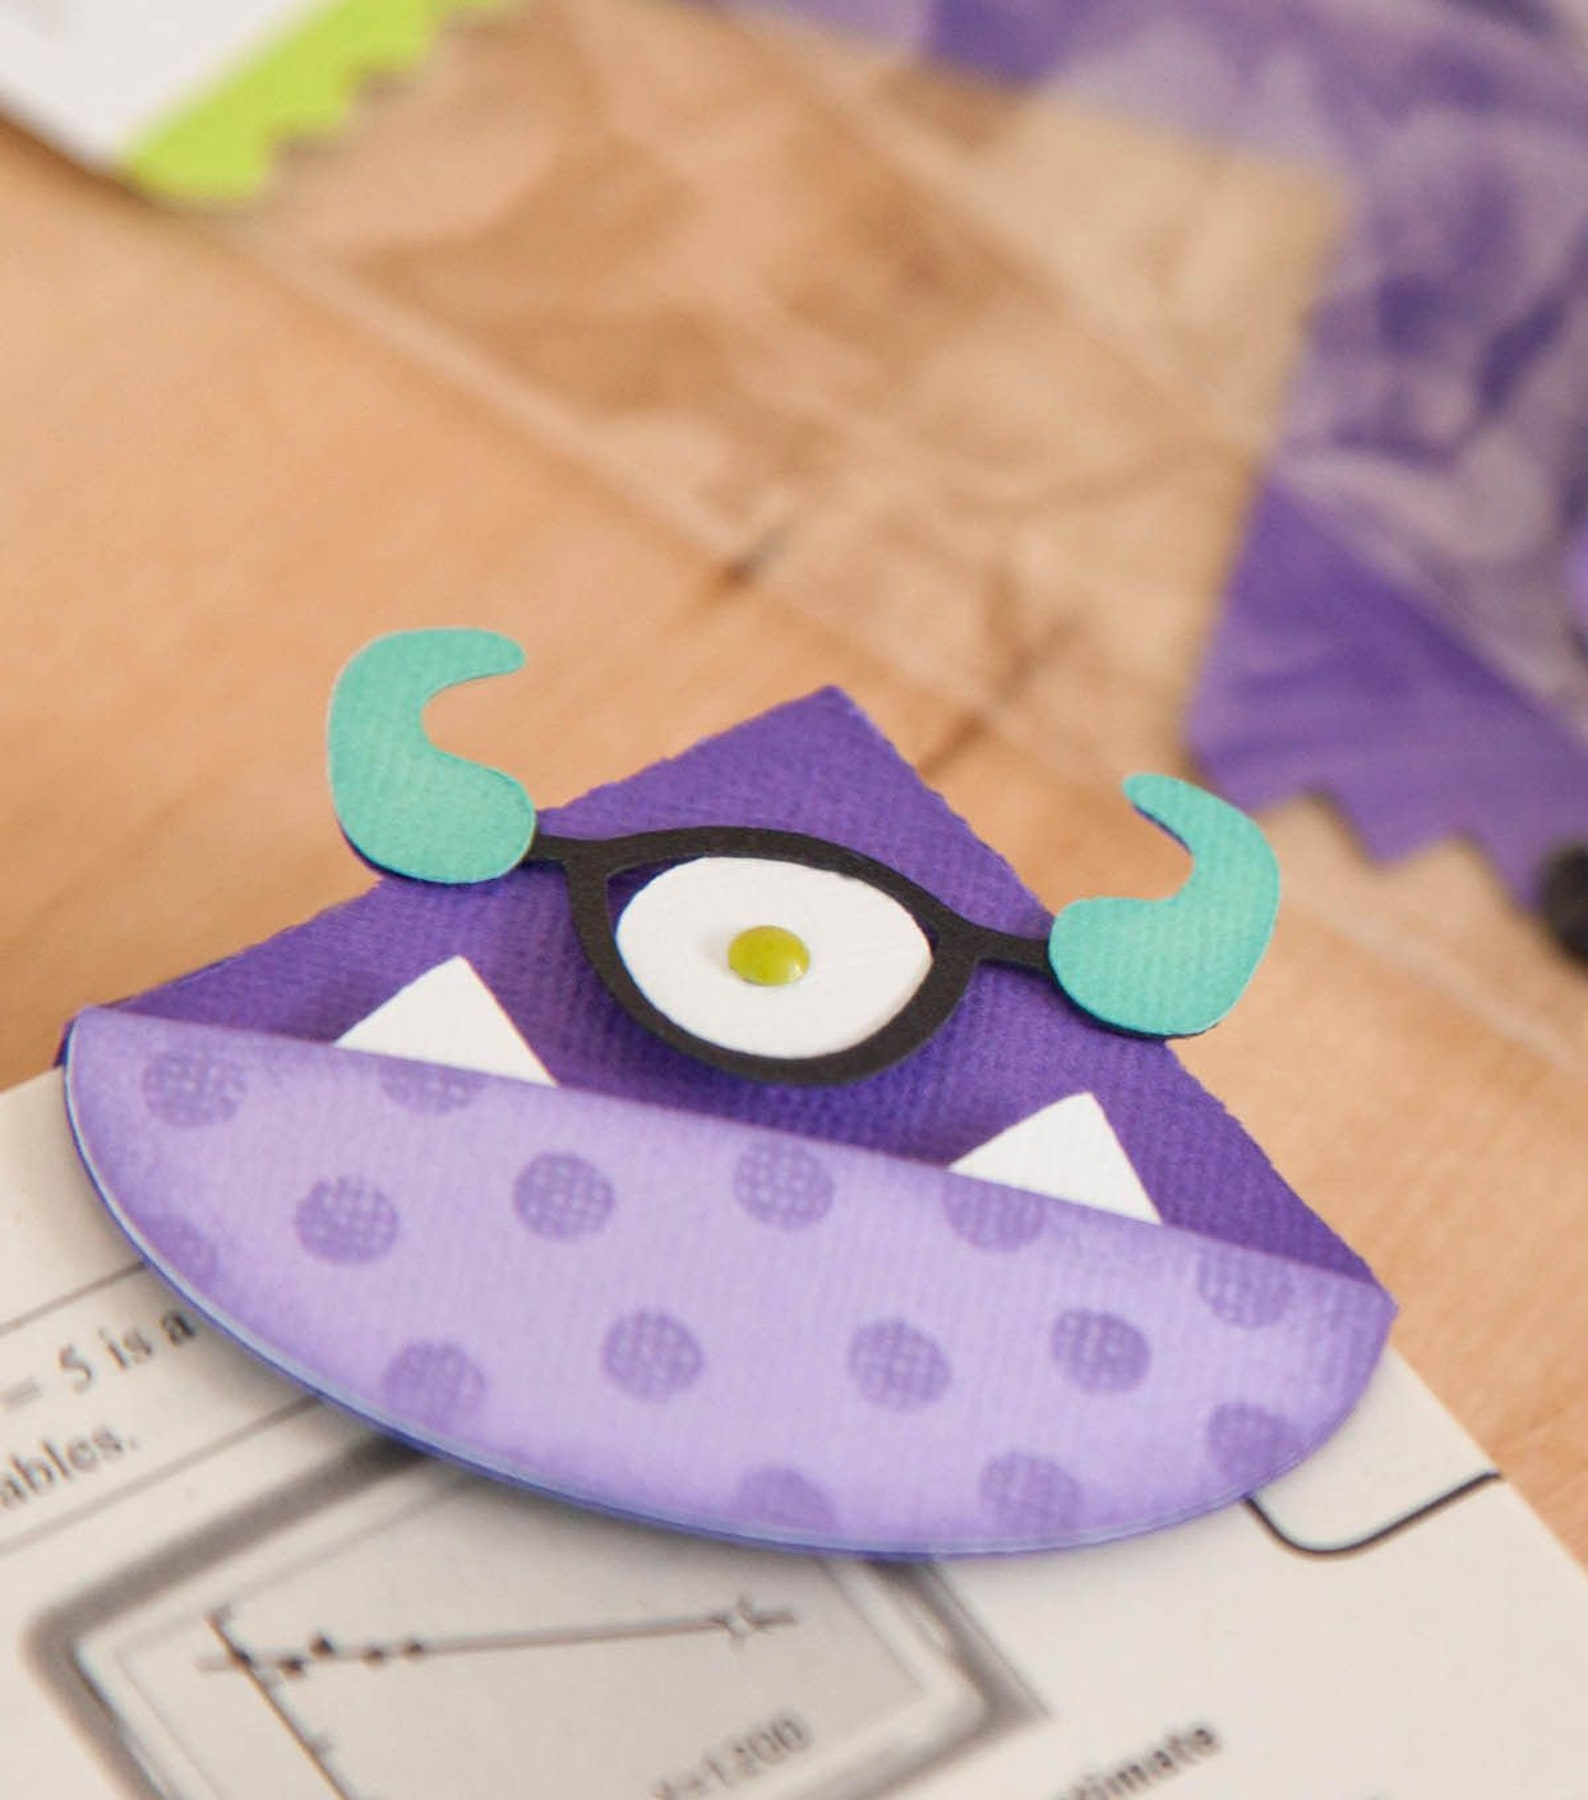 A purple monster bookmark with one eye and horns attached to the corner of an open book